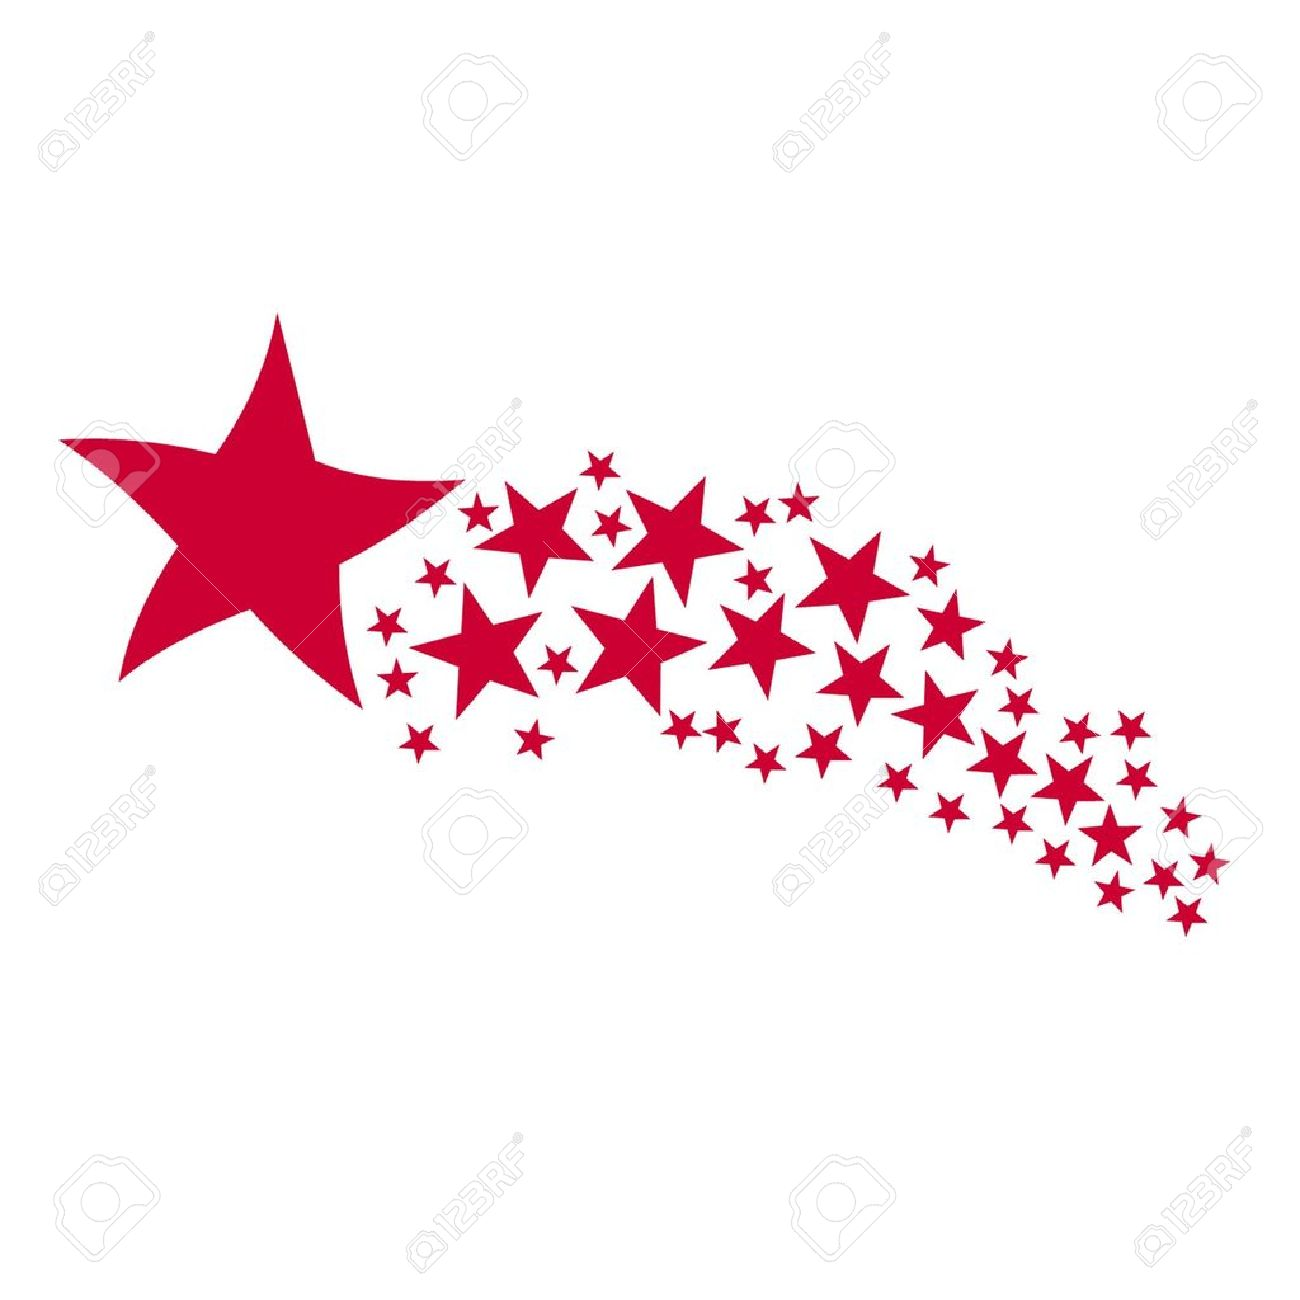 Fireworks clipart shooting star 3 Clipart Clipart  star